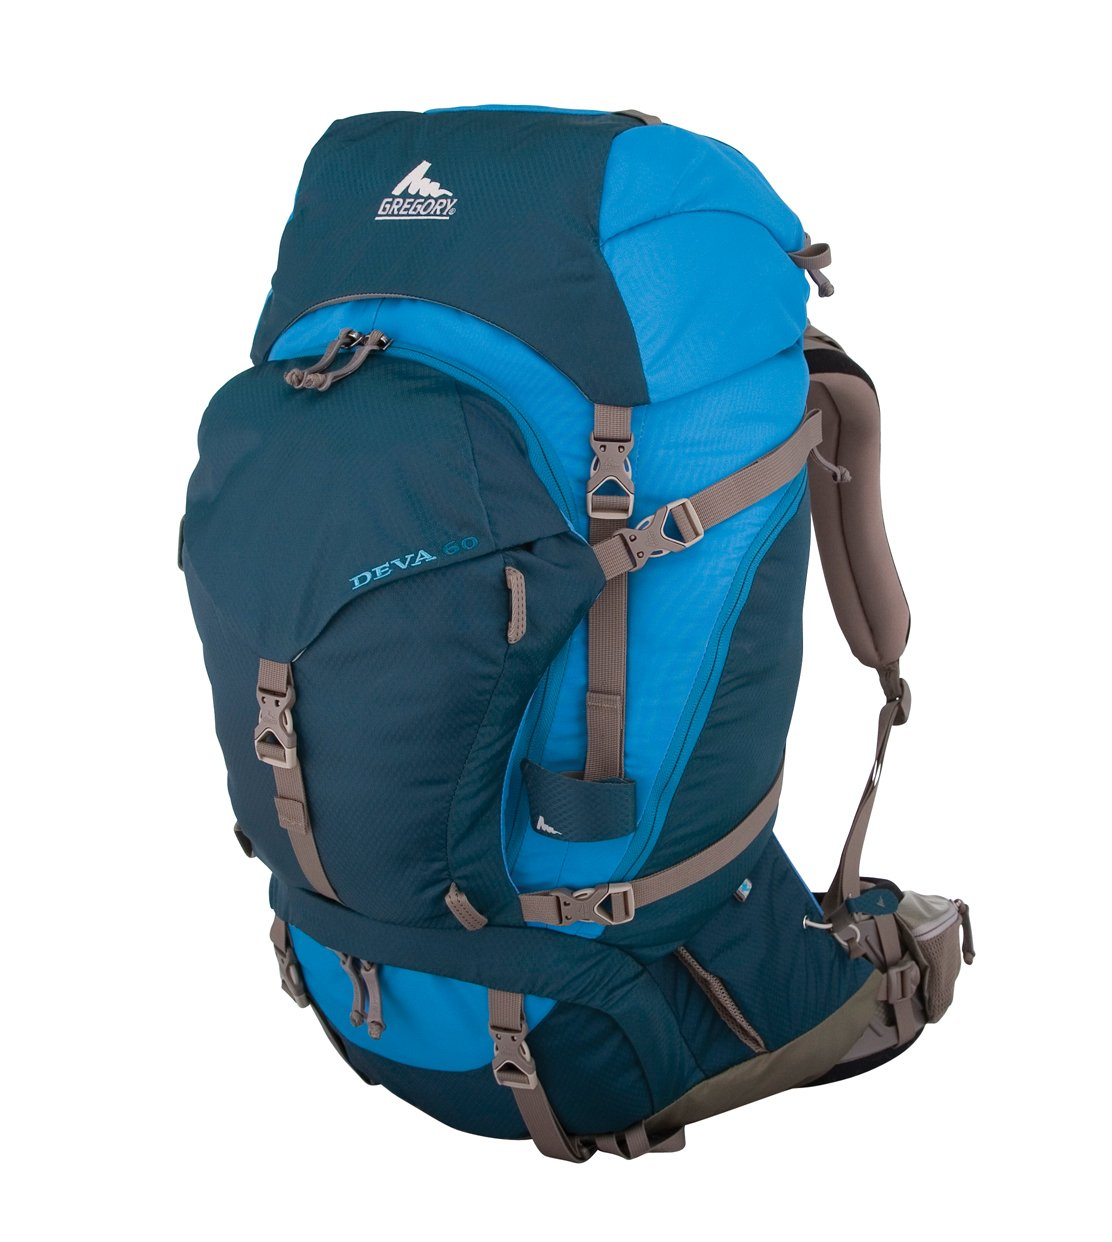 Amazon.com : Gregory Deva 60 Technical Pack, Bodega Blue, X-Small ...